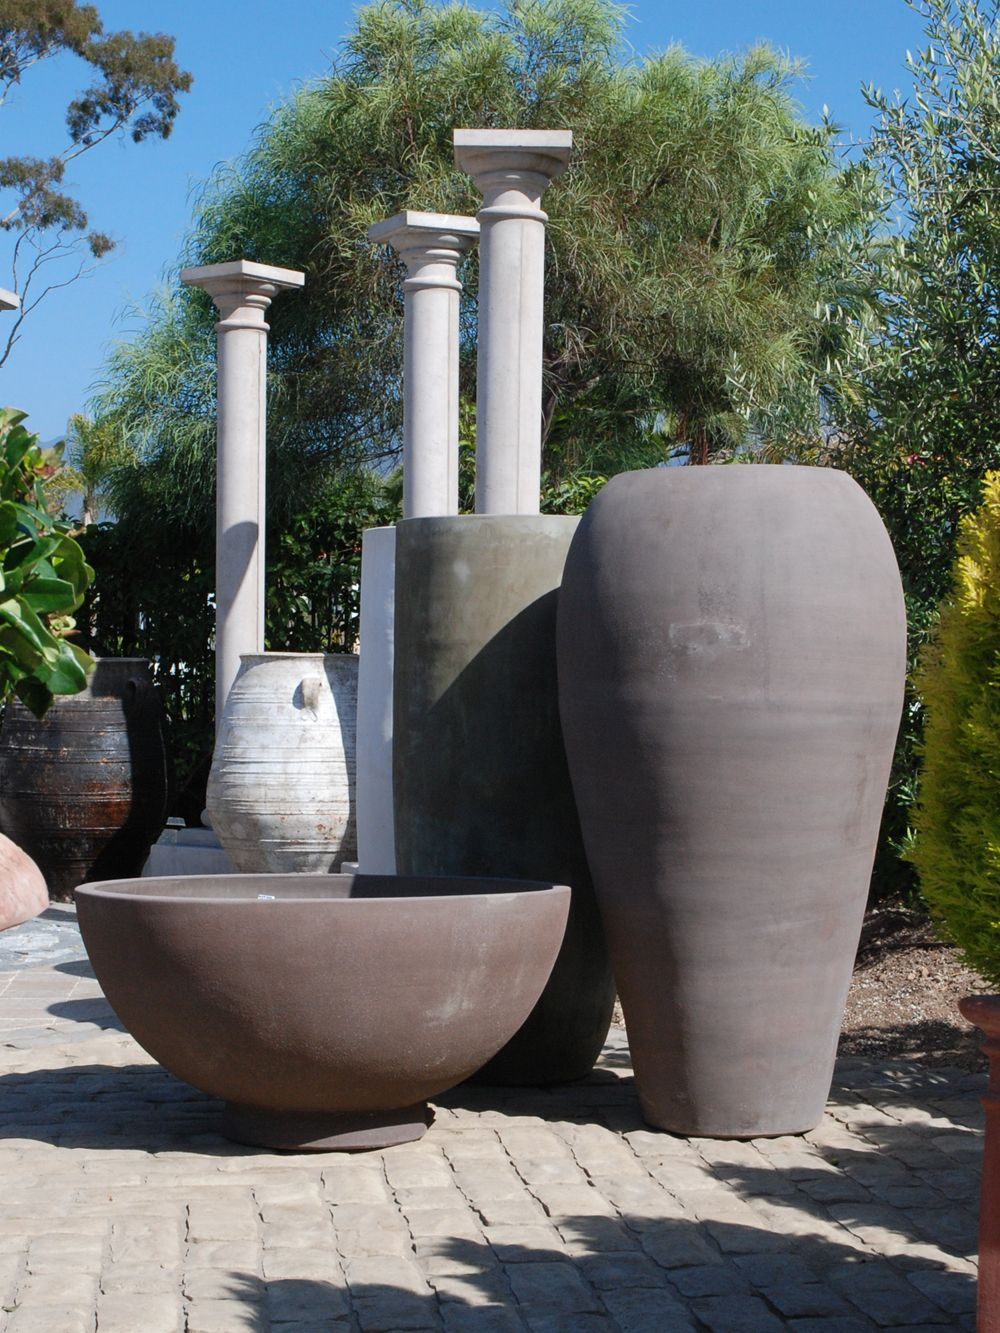 Our Terrecotte San Rocco line of pottery has the perfect shapes for mid-century modern designs. Simple and elegant for your home and garden.